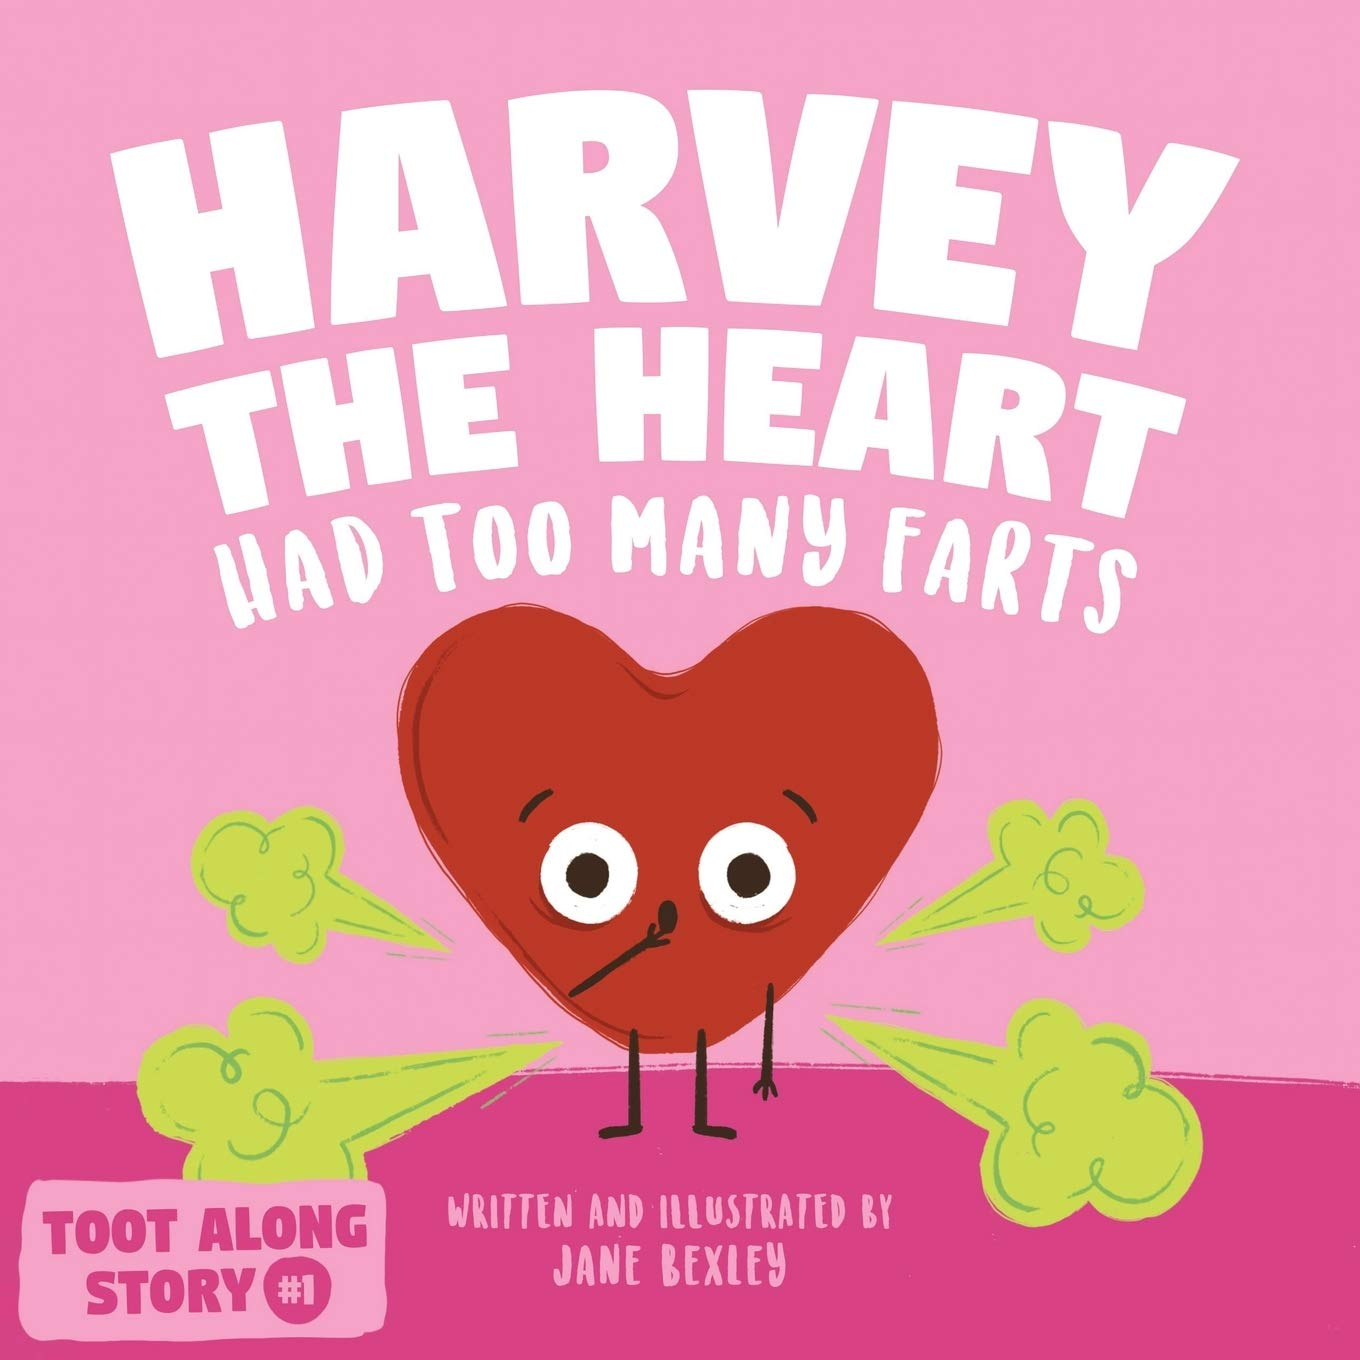 Harvey The Heart Had Too Many Farts: A Rhyming Read Aloud Story Book For Kids And Adults About Farting and Friendship, A Valentine's Day Gift For Boys and Girls WeeklyReviewer